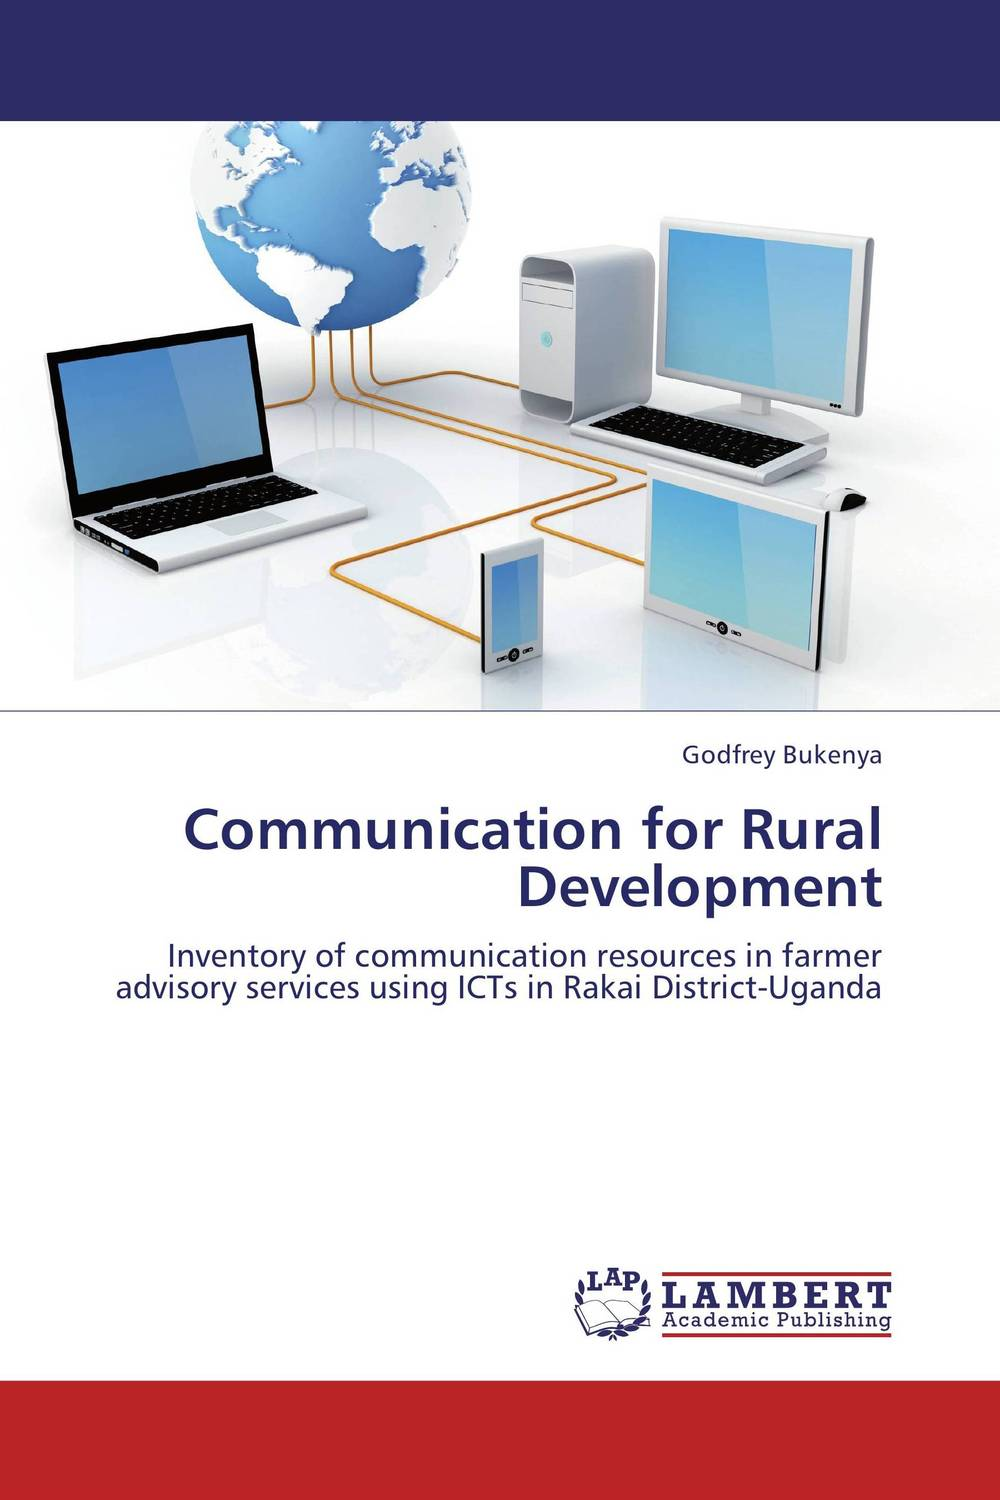 Communication for Rural Development